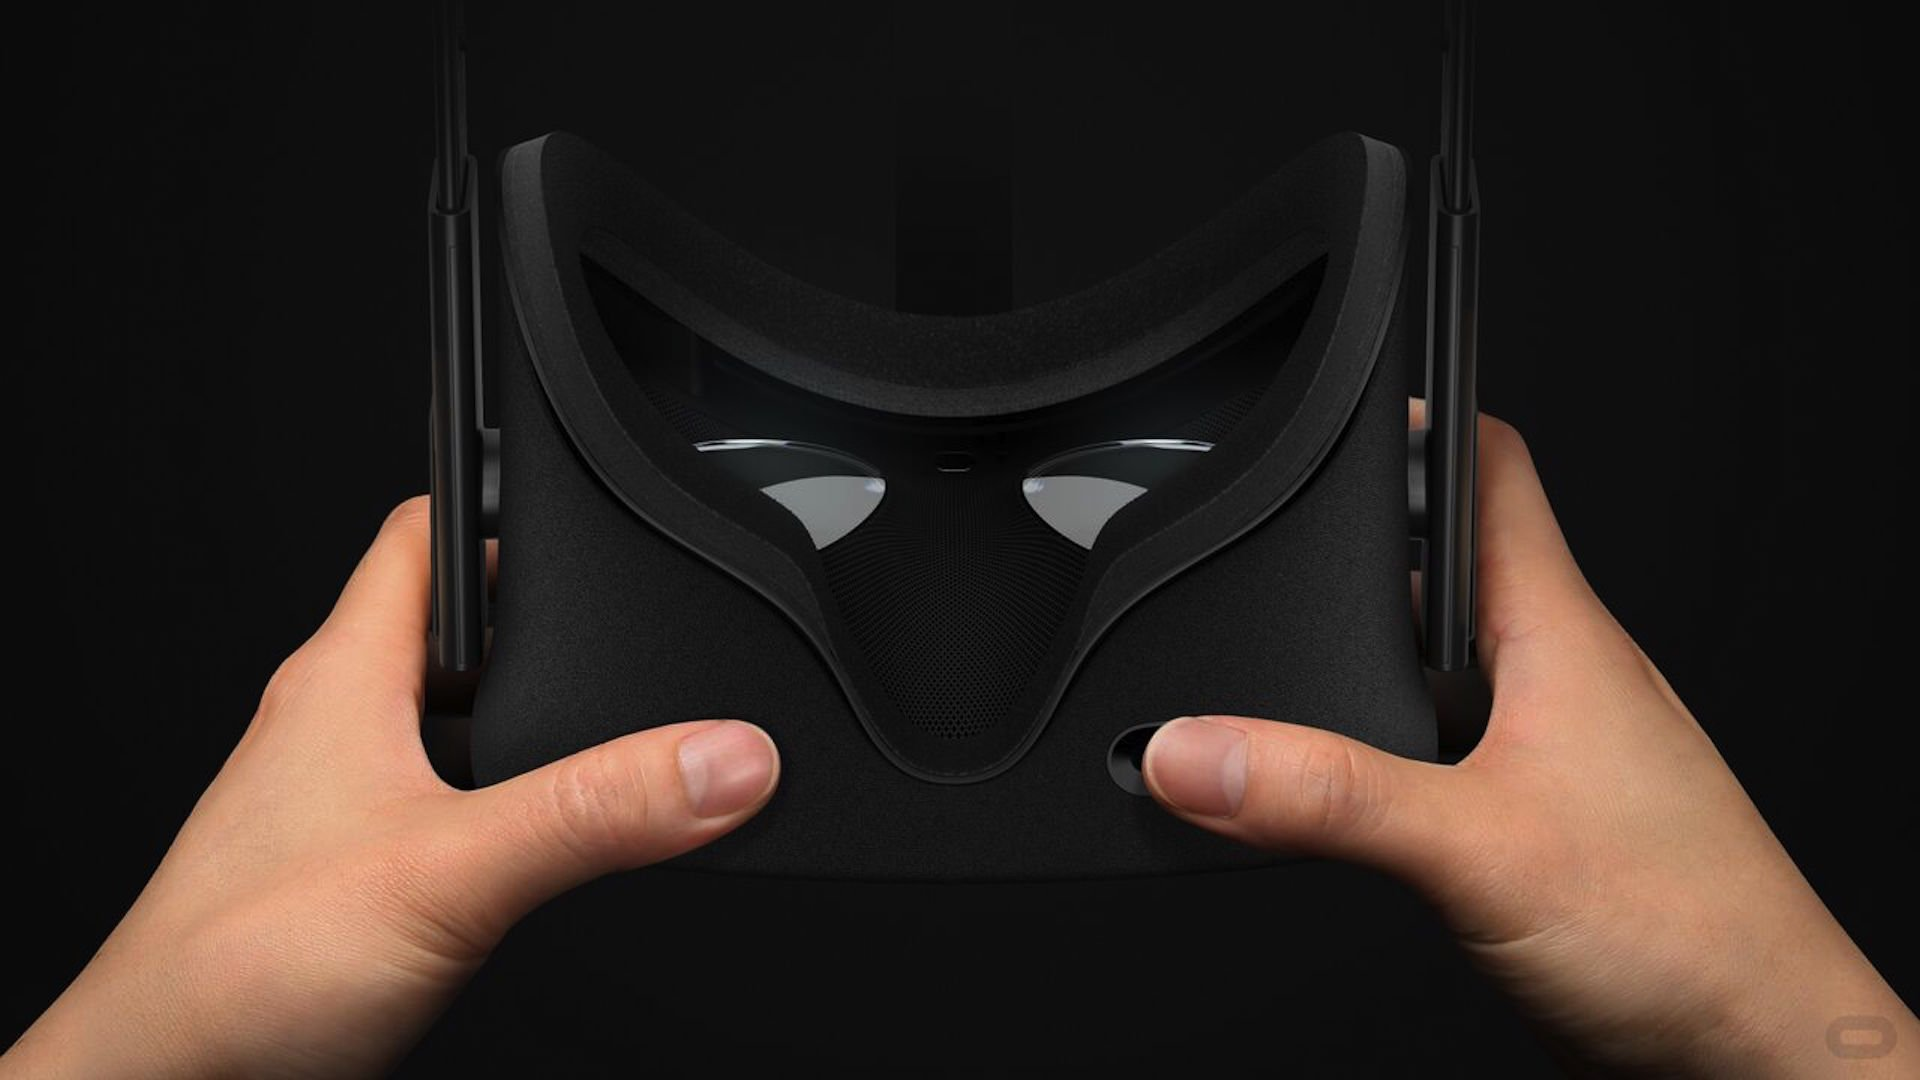 Consumer Oculus Rift Revealed